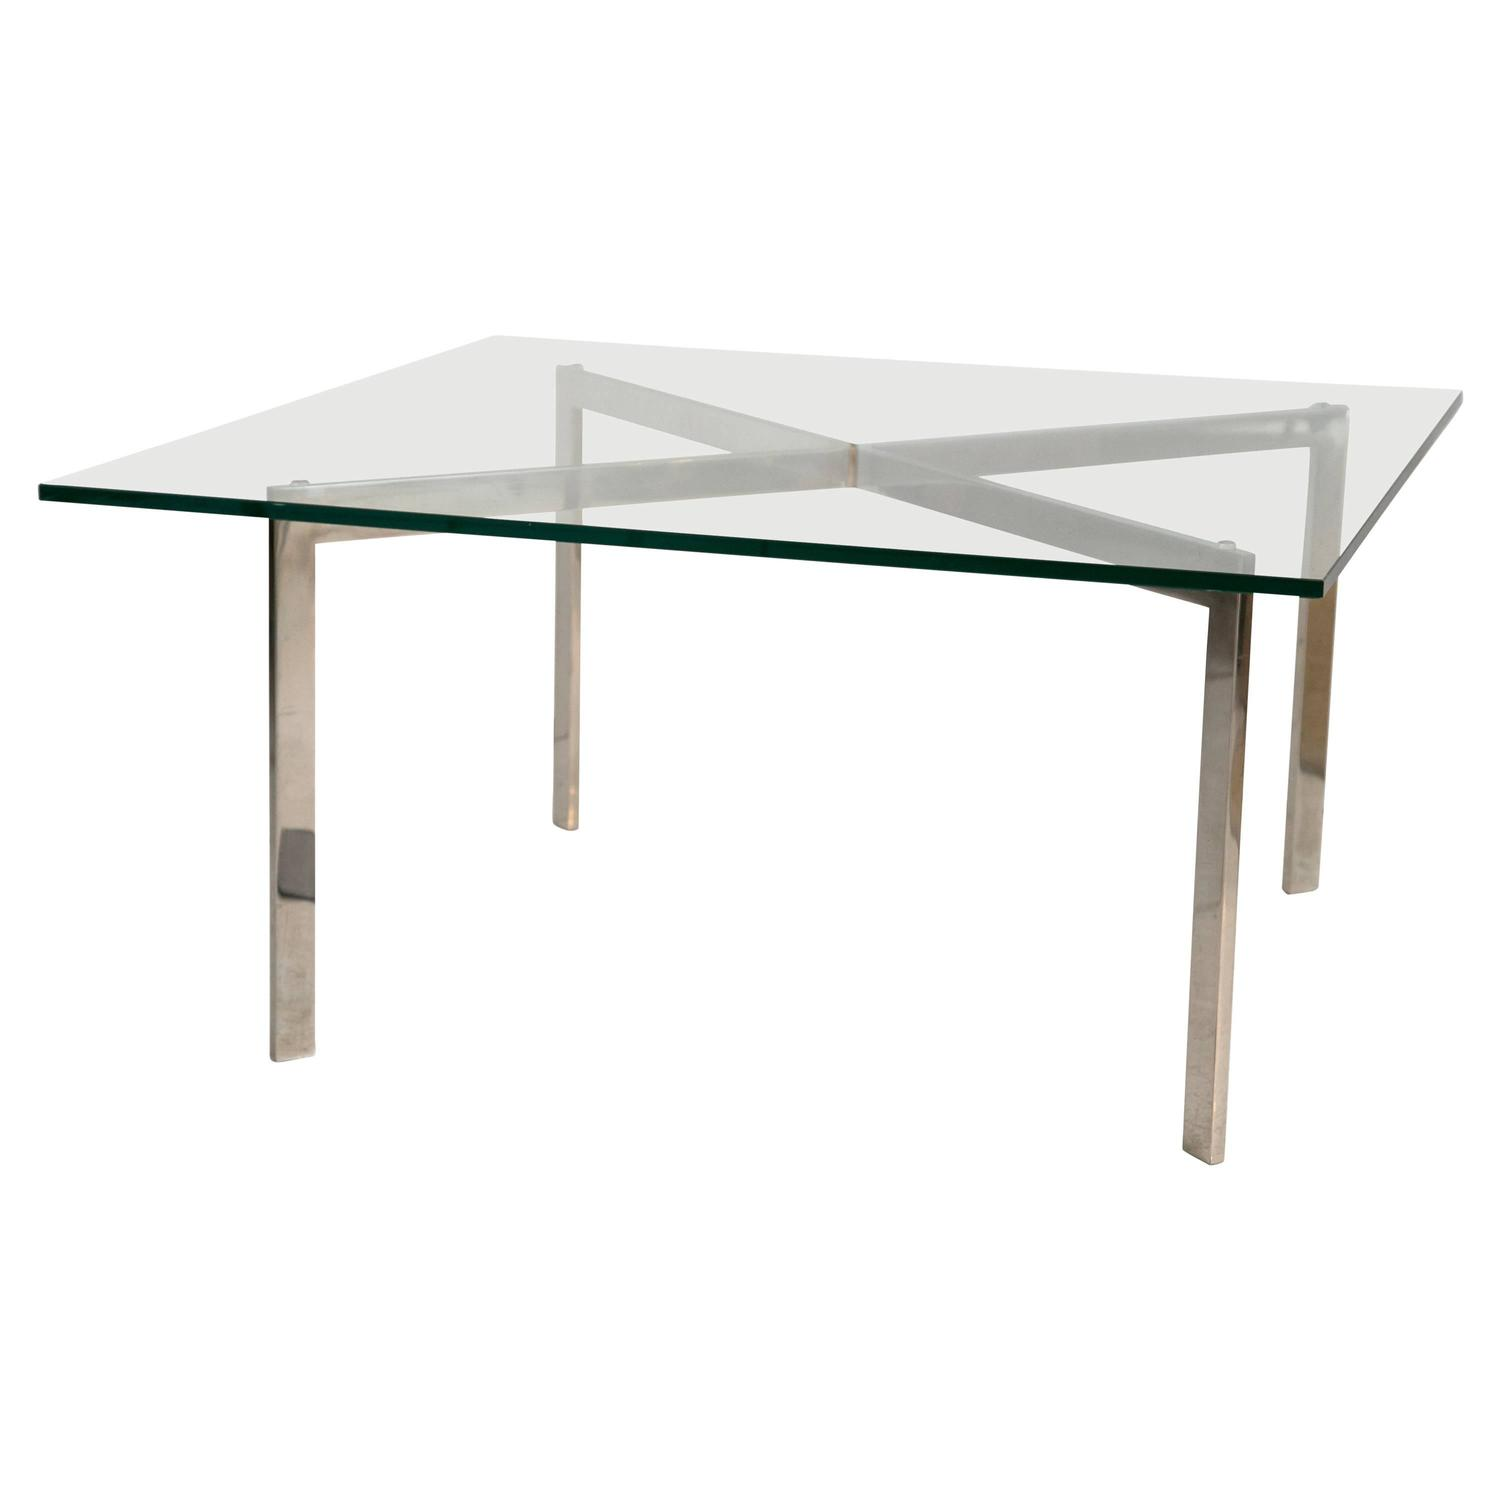 barcelona table by mies van der rohe for knoll for sale at. Black Bedroom Furniture Sets. Home Design Ideas